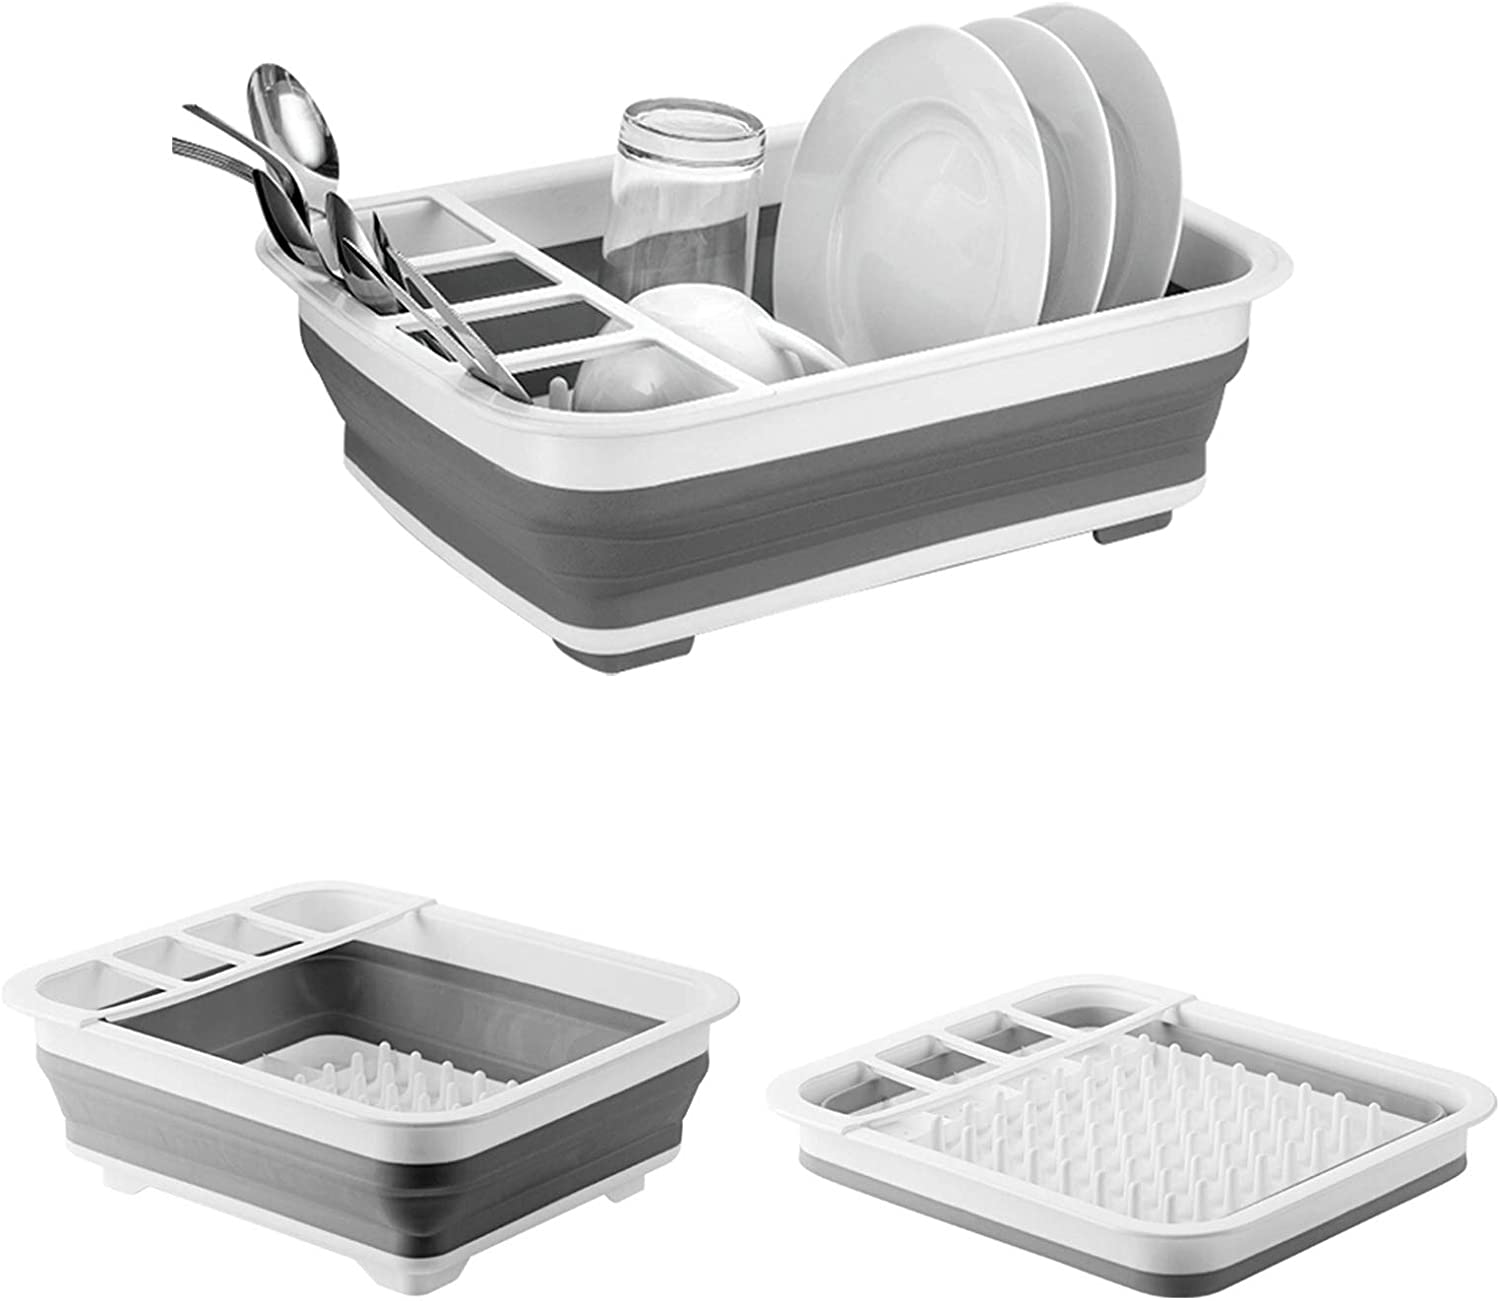 Collapsible Dish Drying Rack with Adjustable Swivel Sprout Dishes Dinnerware Basket Plates Drainer Collapsible Dish Drainers for Kitchen Counter RV Campers Motorhome